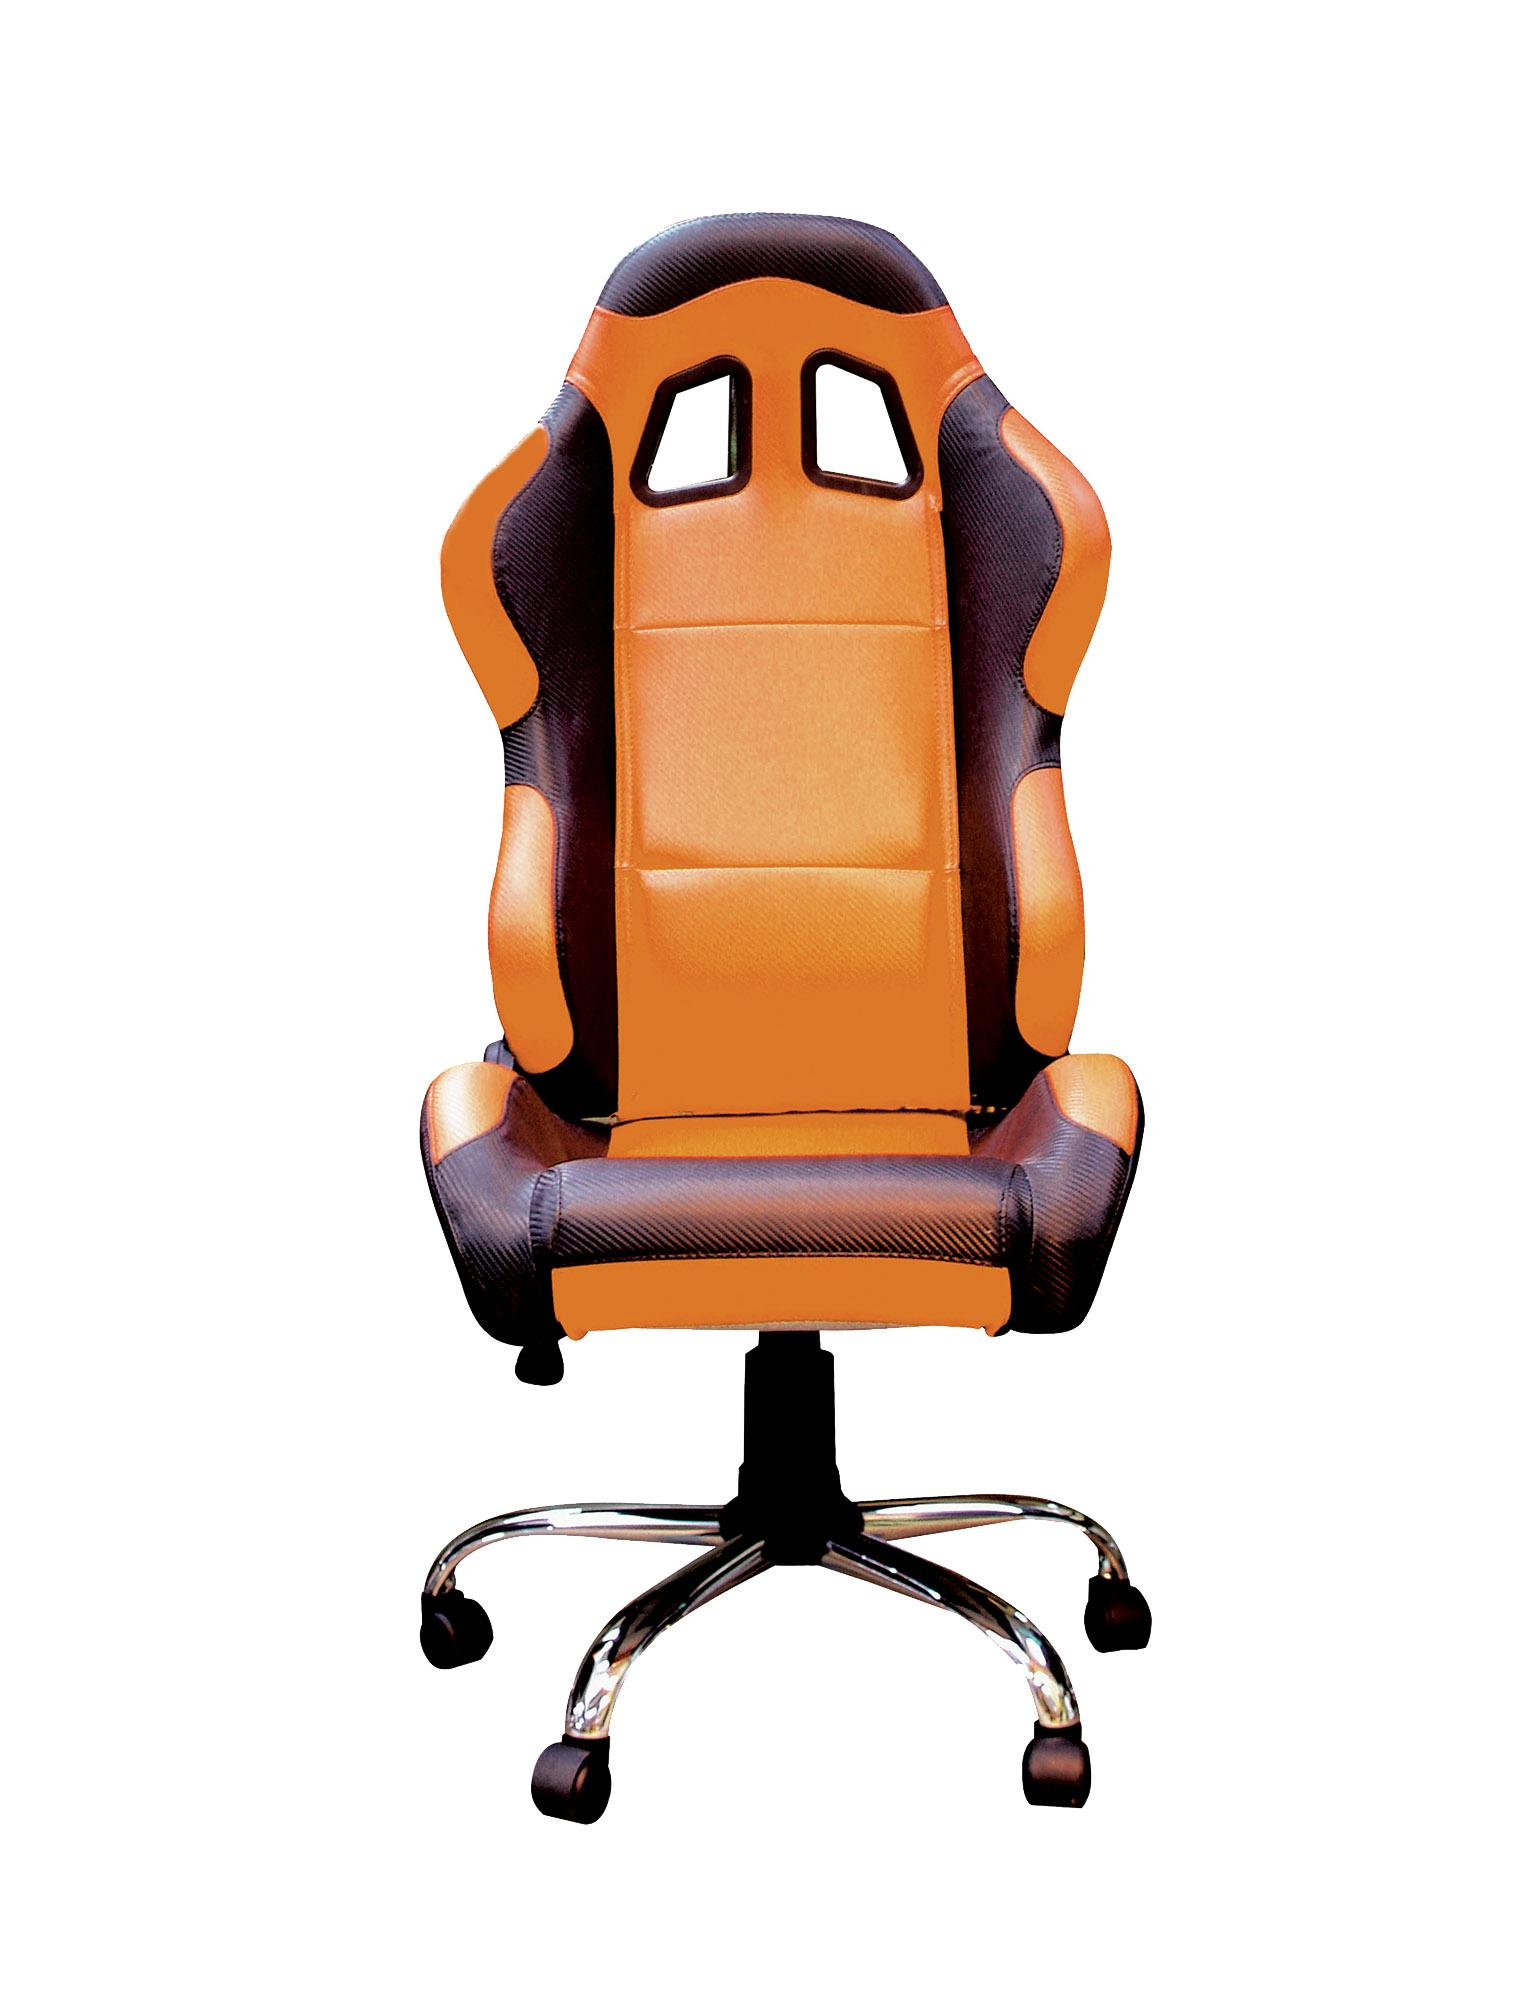 RIDER PADDOCK TEAM CHAIR - ORANGE/NO LOGO WITH BLACK TRIM